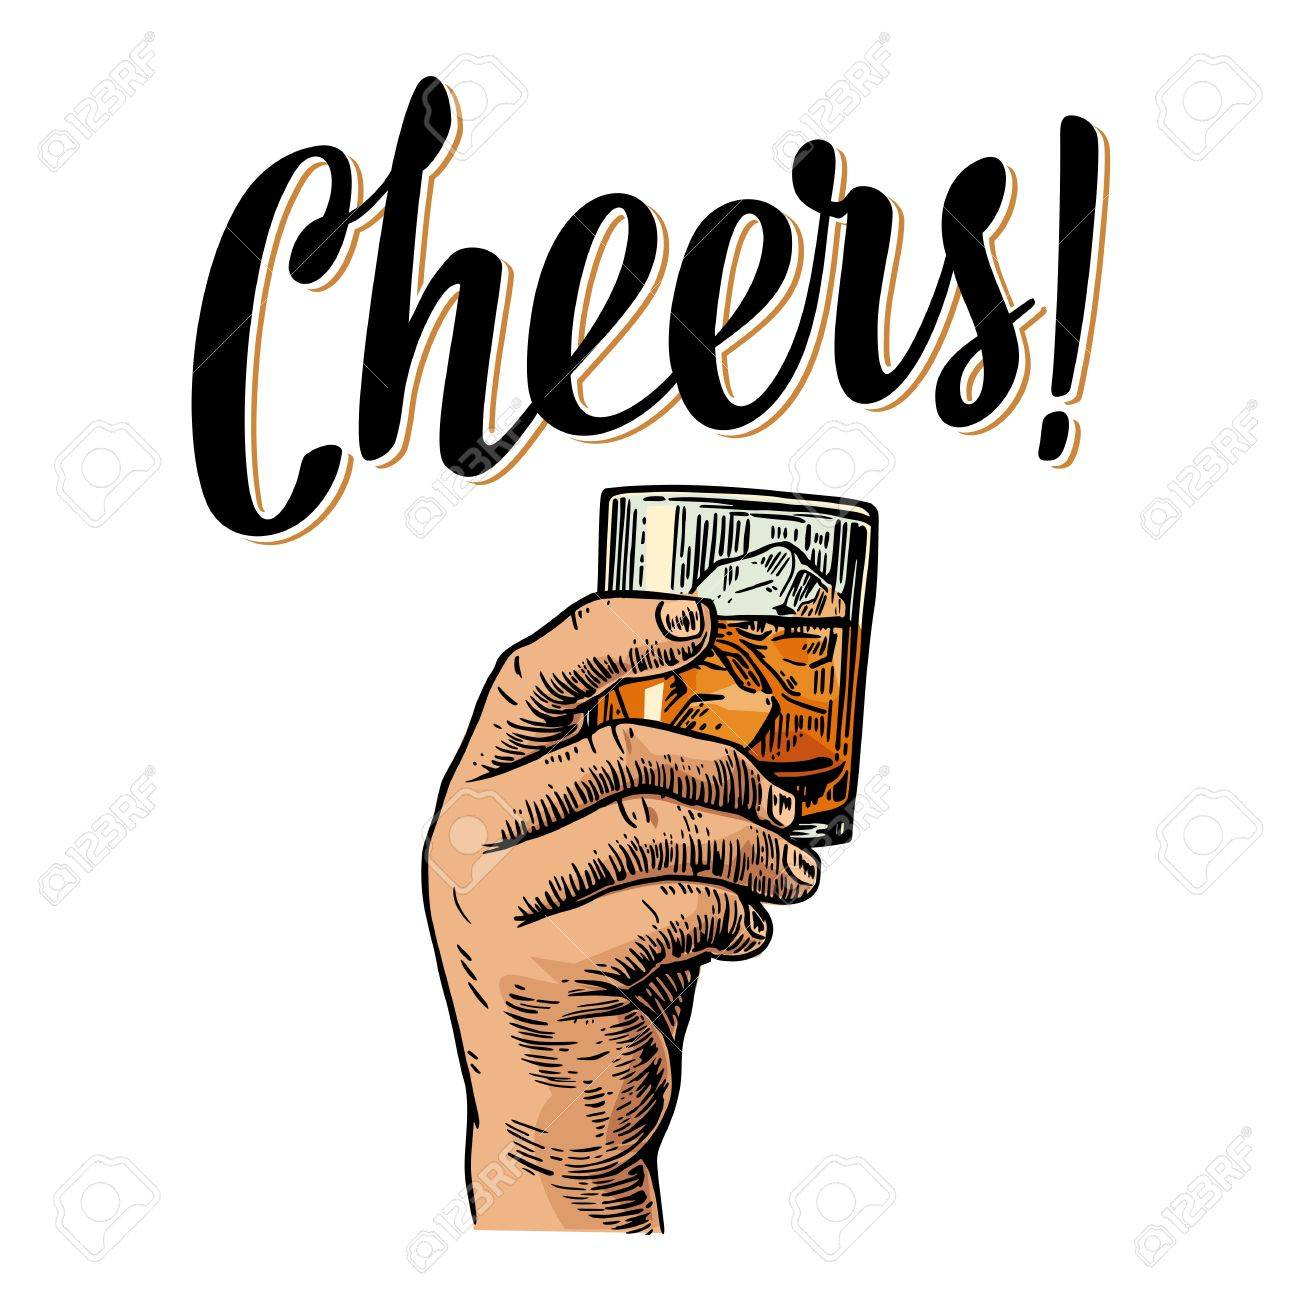 Male hand holding a glass with whiskey and ice cubes. Cheers toast lettering. Vintage engraving illustration for label, poster, invitation to a party. Isolated on white background. - 63905871